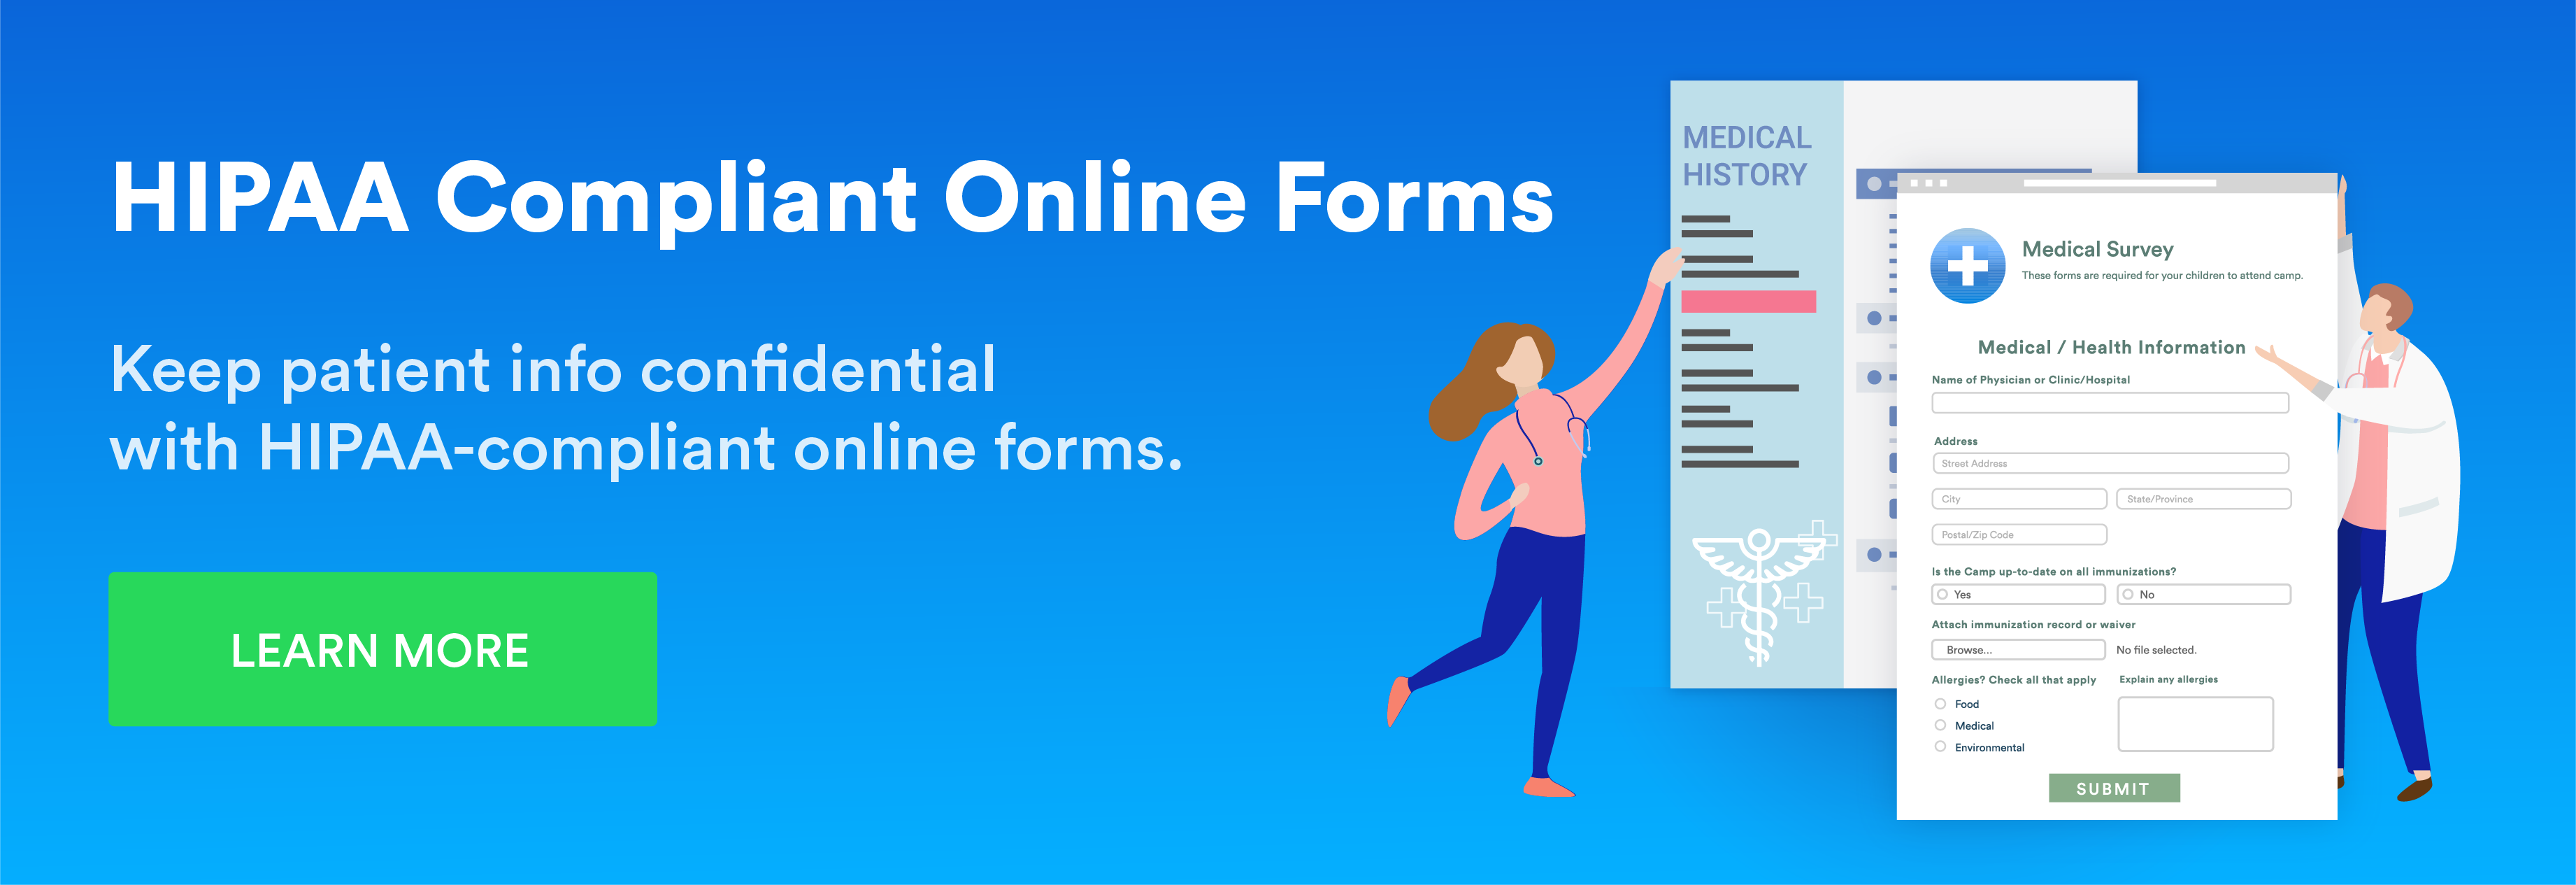 Keep patient info confidential with HIPAA-compliant online forms.